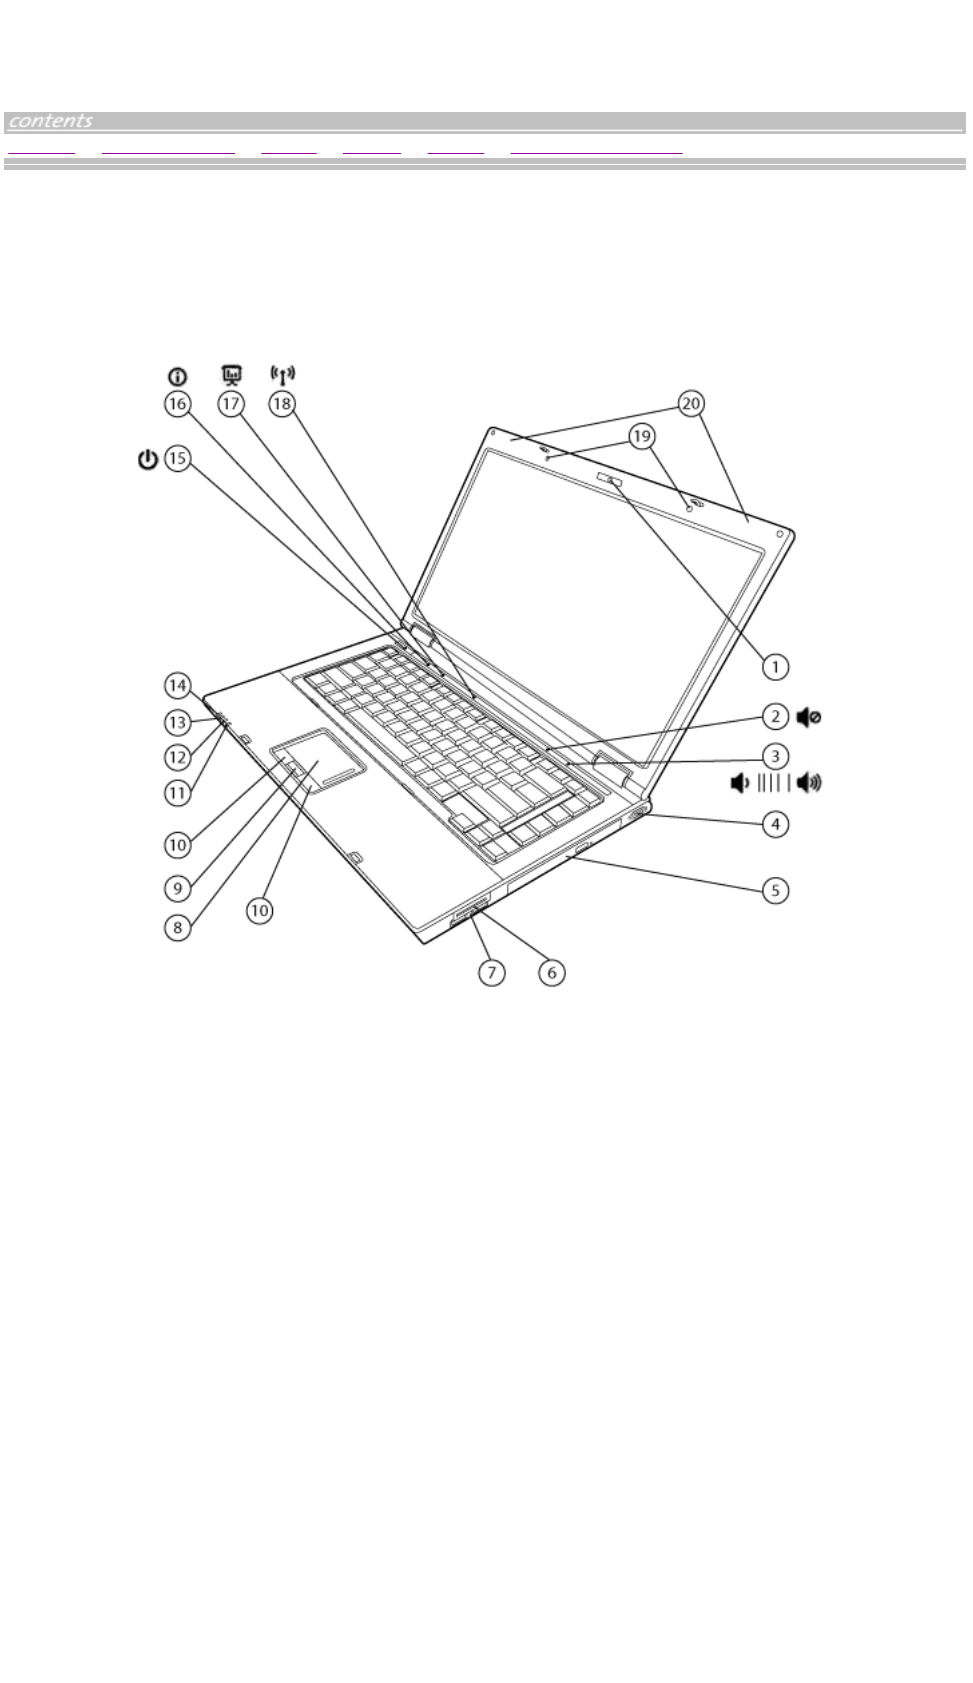 HP (Hewlett-Packard) Laptop 6730b User Guide